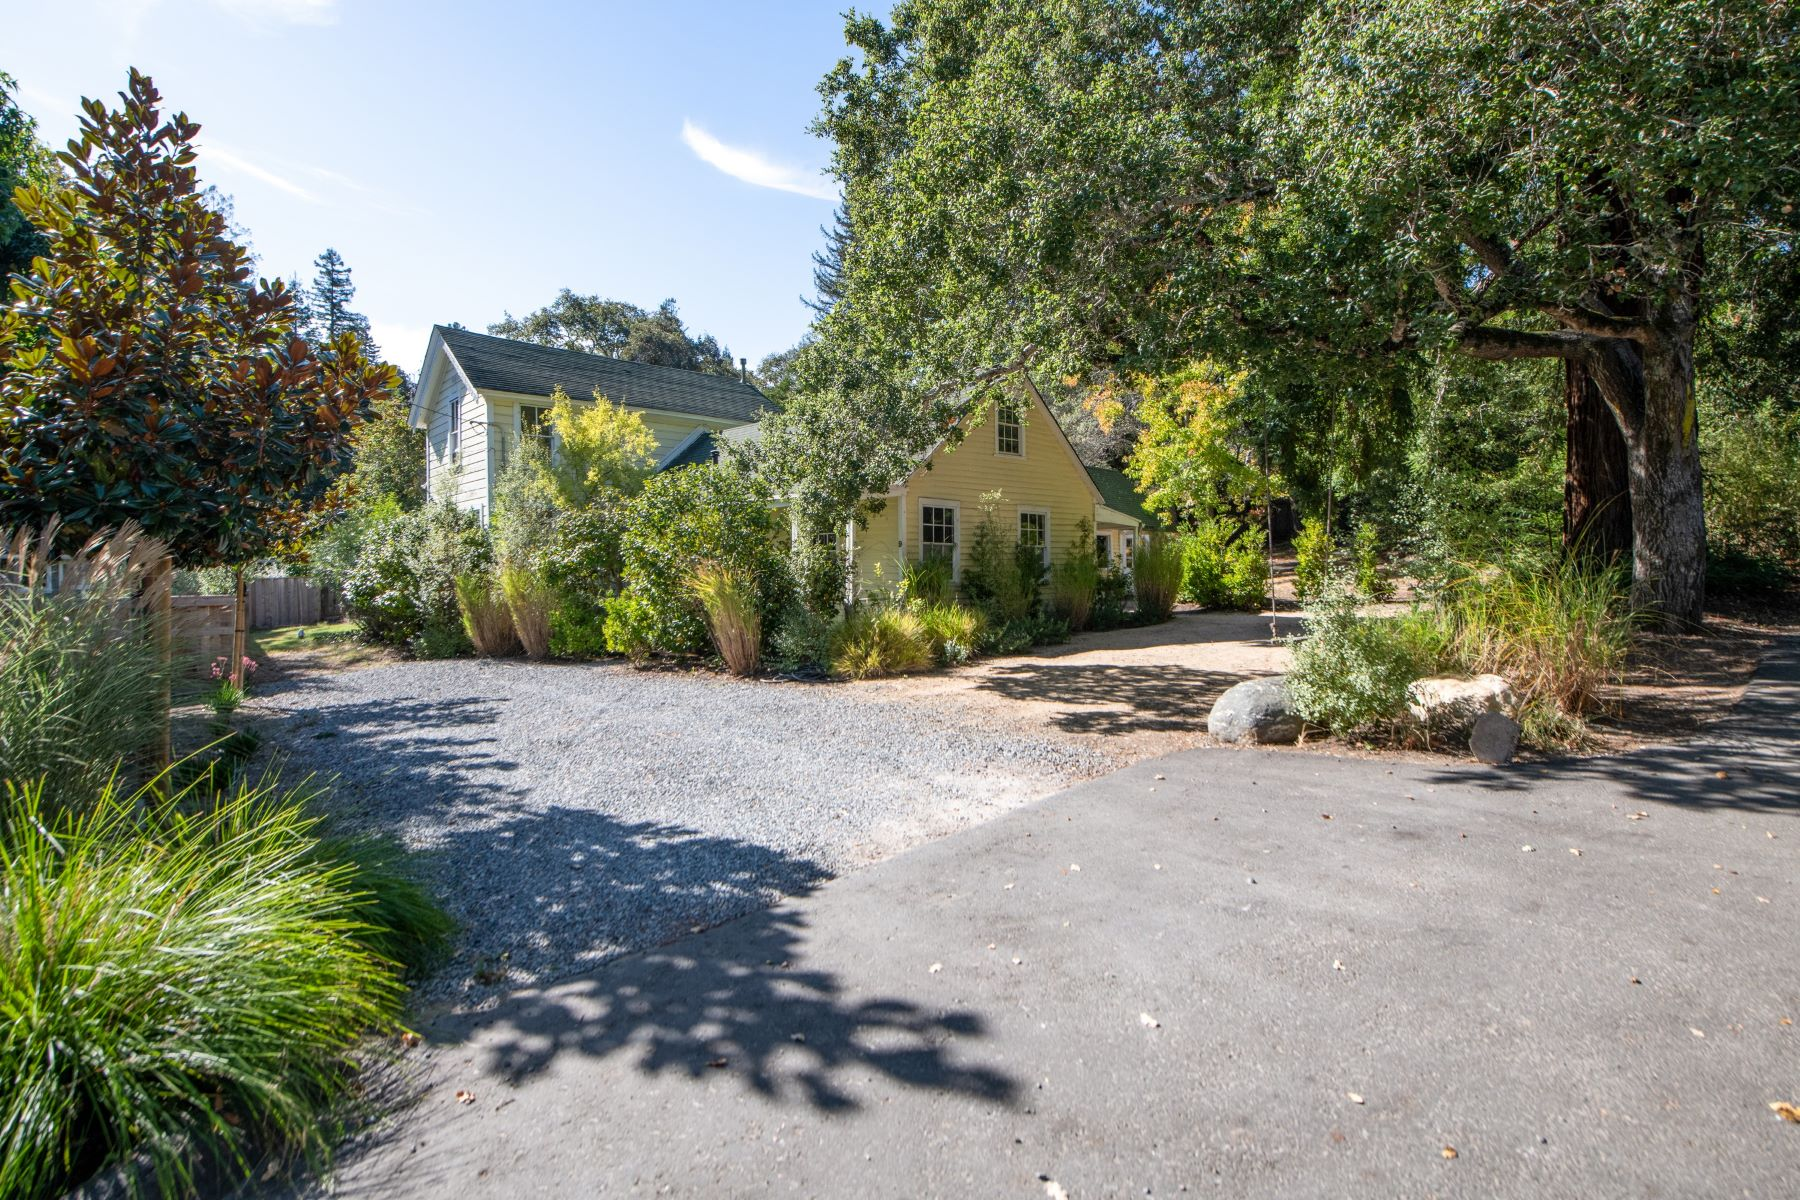 Single Family Homes for Sale at Diamond in the Rough in Idyllic Location 9 Murray Lane Larkspur, California 94939 United States